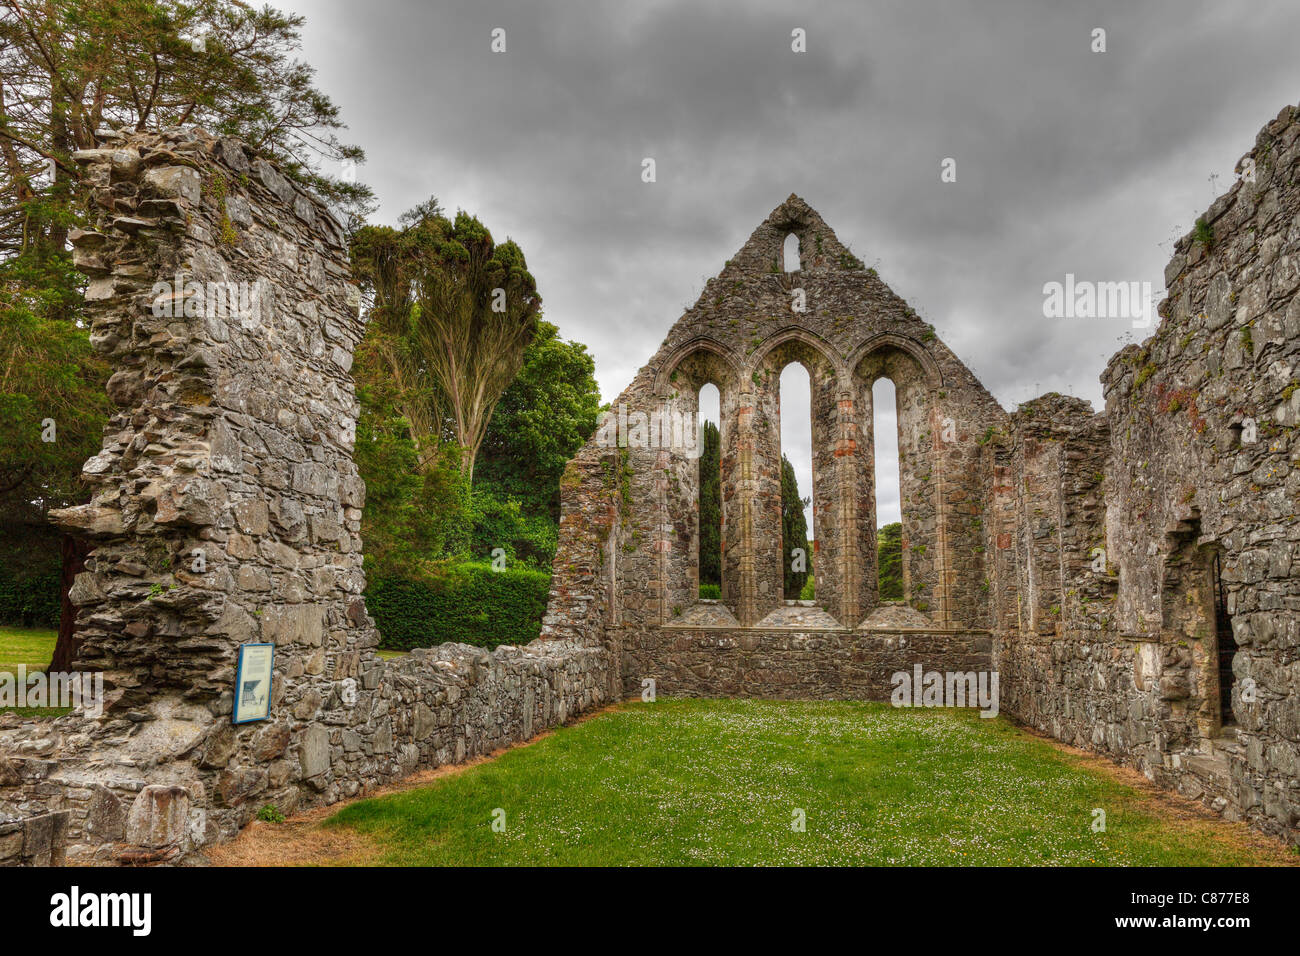 United Kingdom, Northern Ireland, County Down, View of ruined Grey Abbey - Stock Image